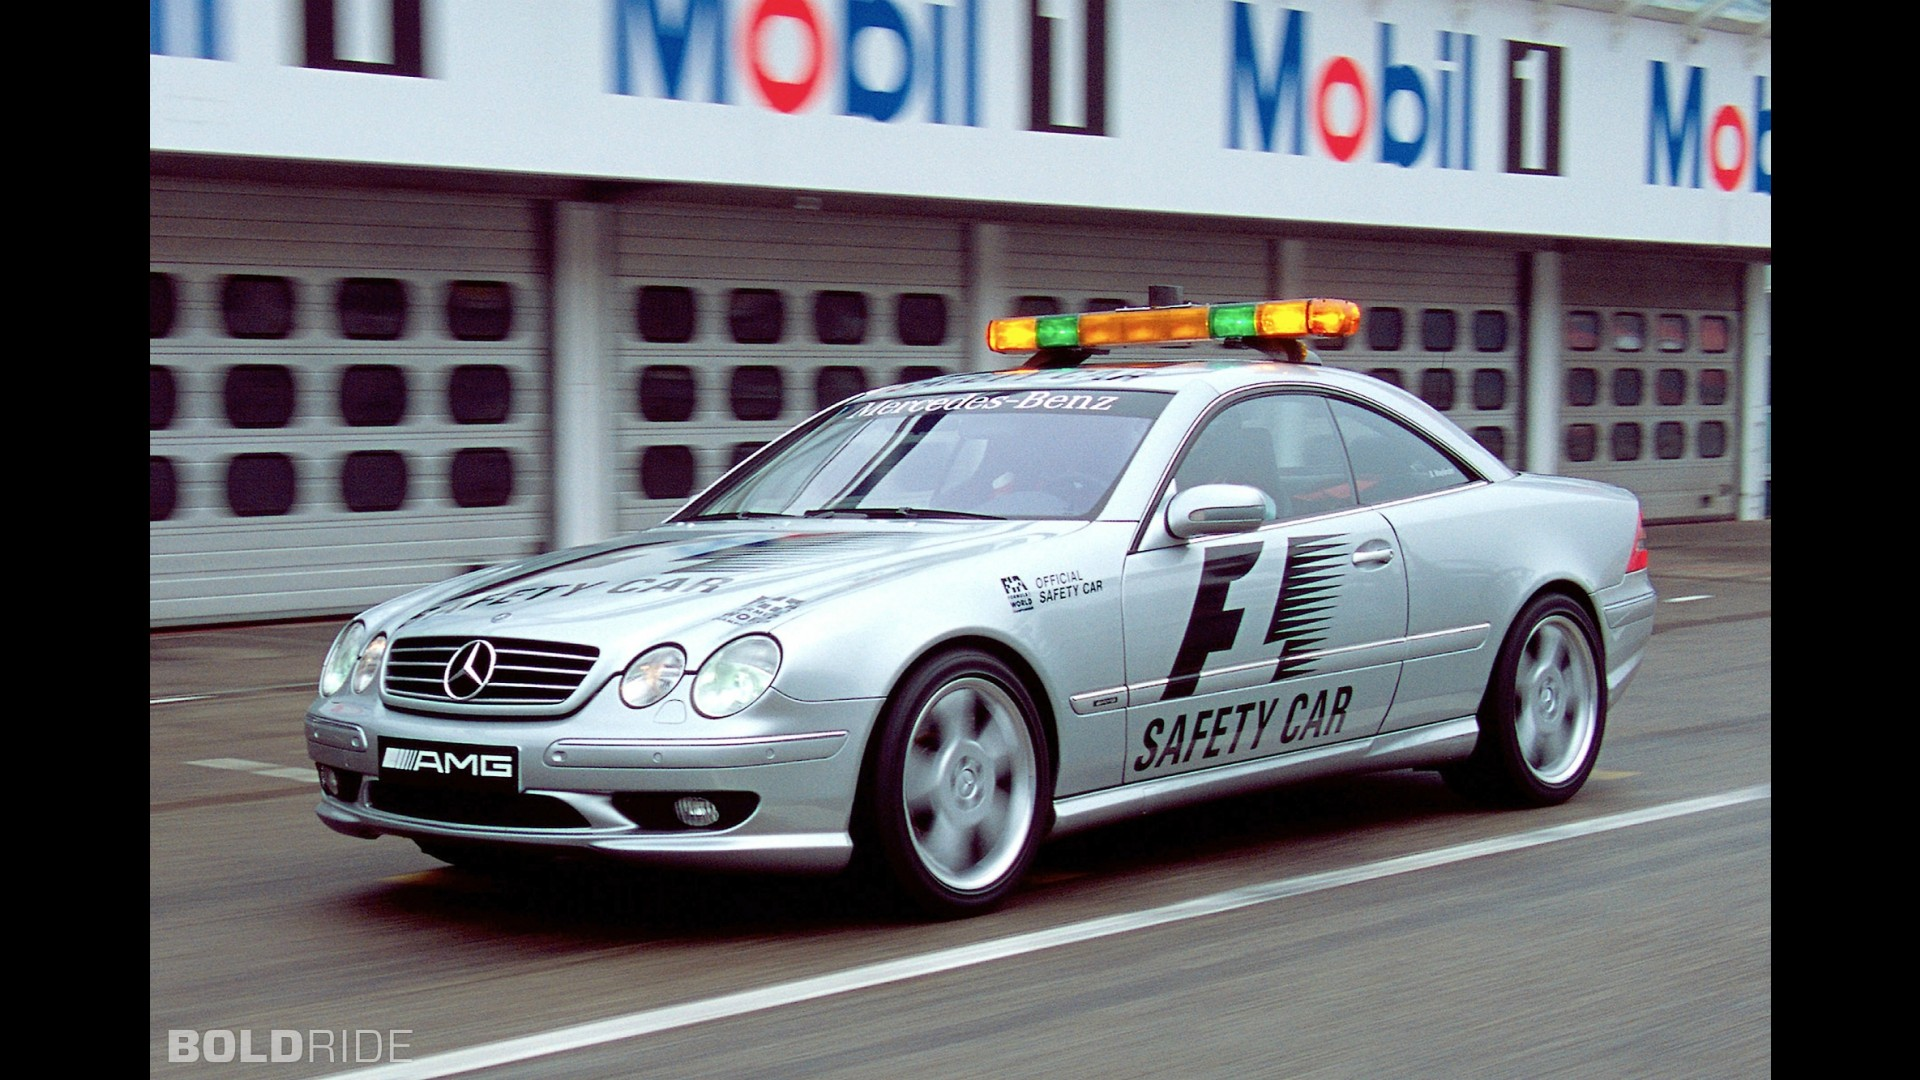 Mercedes benz cl55 amg f1 safety car for Mercedes benz safety